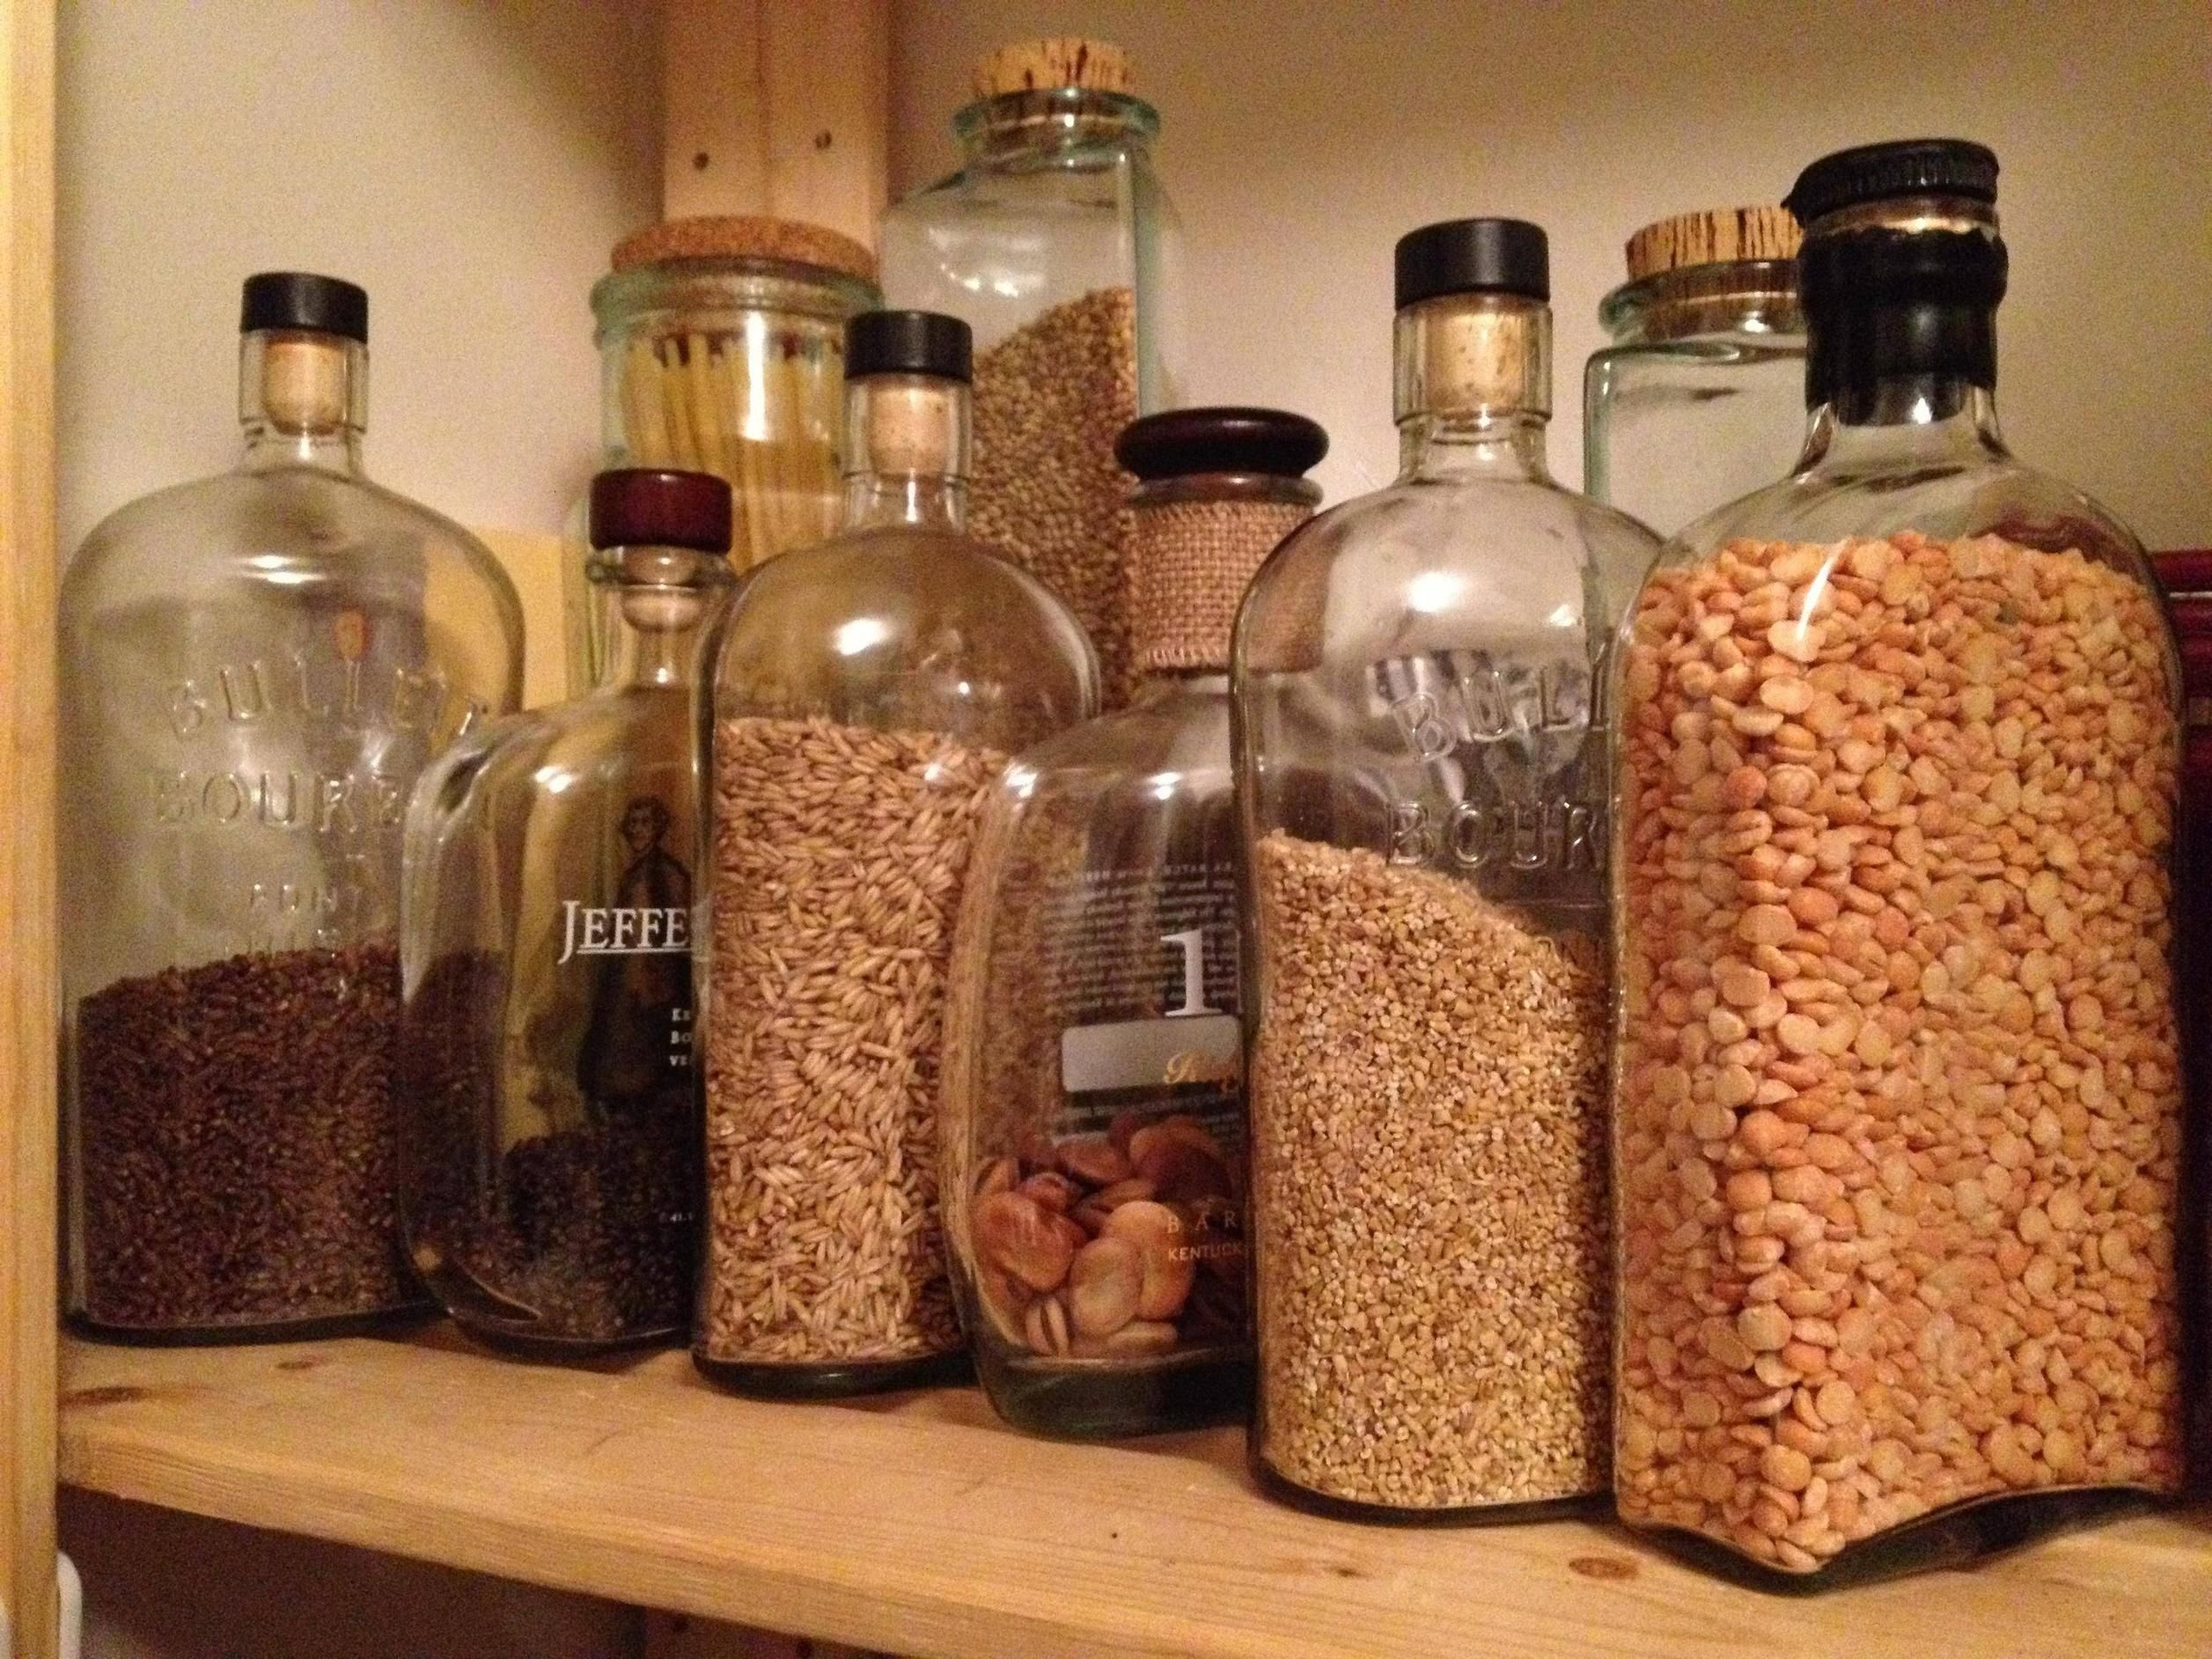 What to do with empty wine bottles - Reduce Reuse Recycle